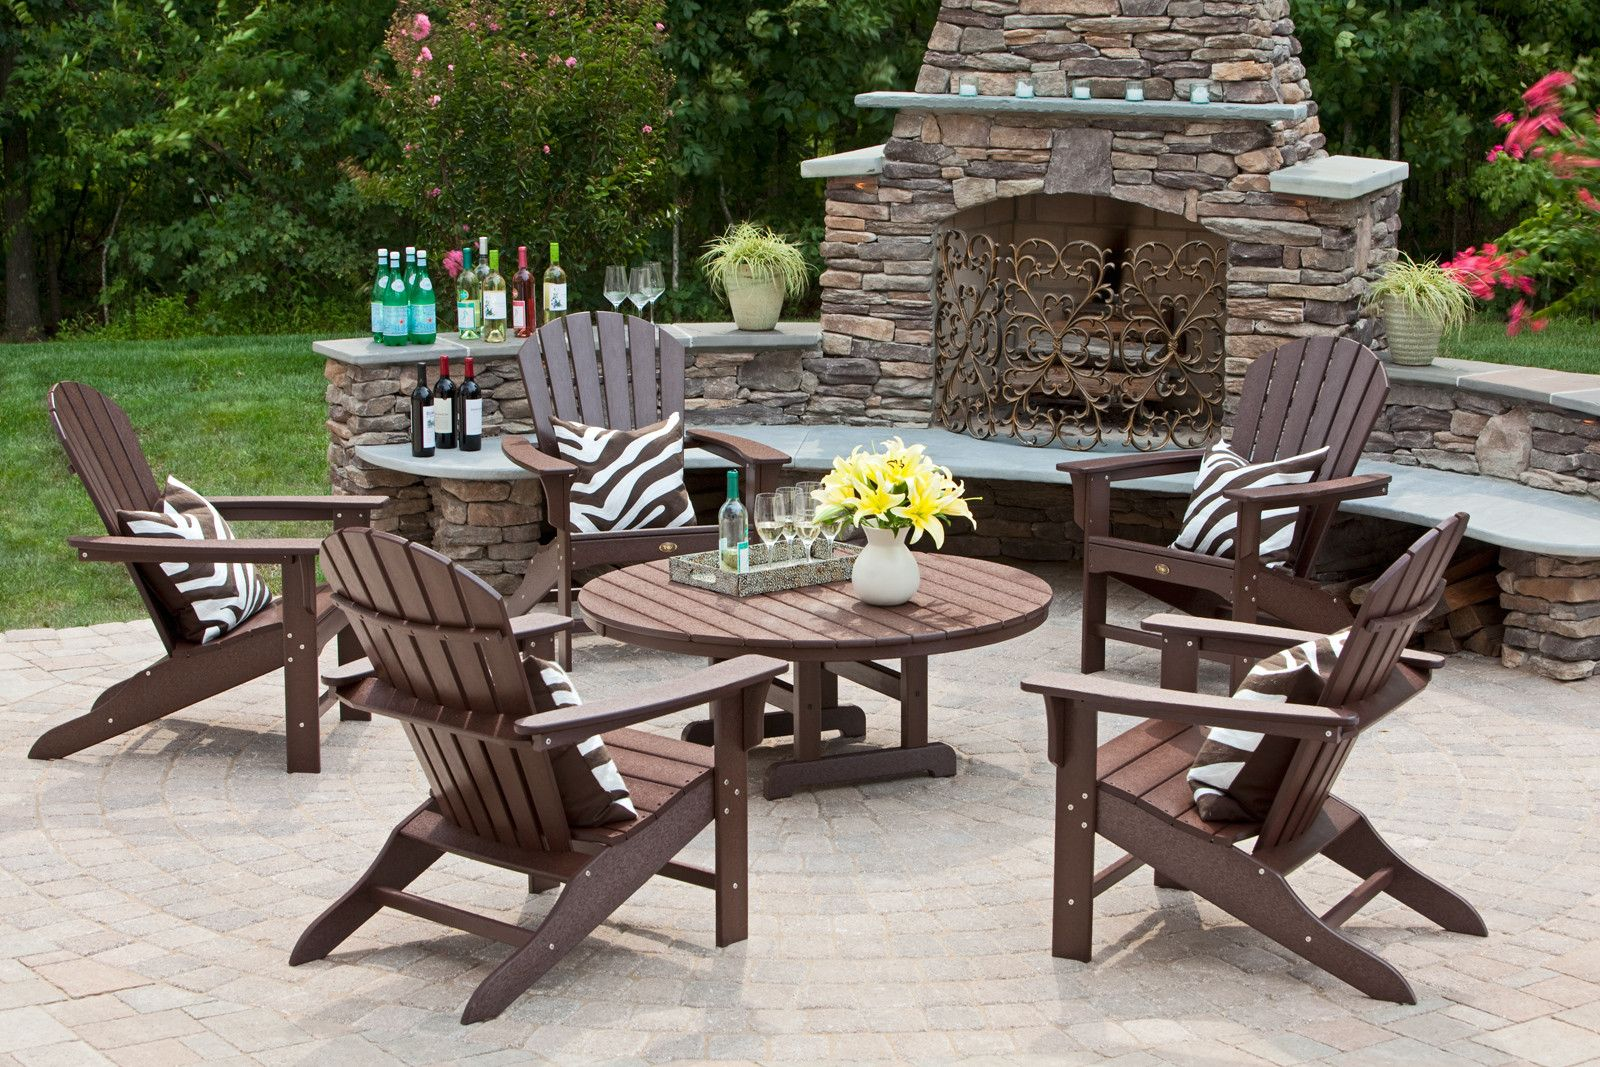 24 Ideas To Try For A Cool Outdoor Fireplace Talkdecor Trex Outdoor Furniture Relaxing Patio Garden Patio Sets